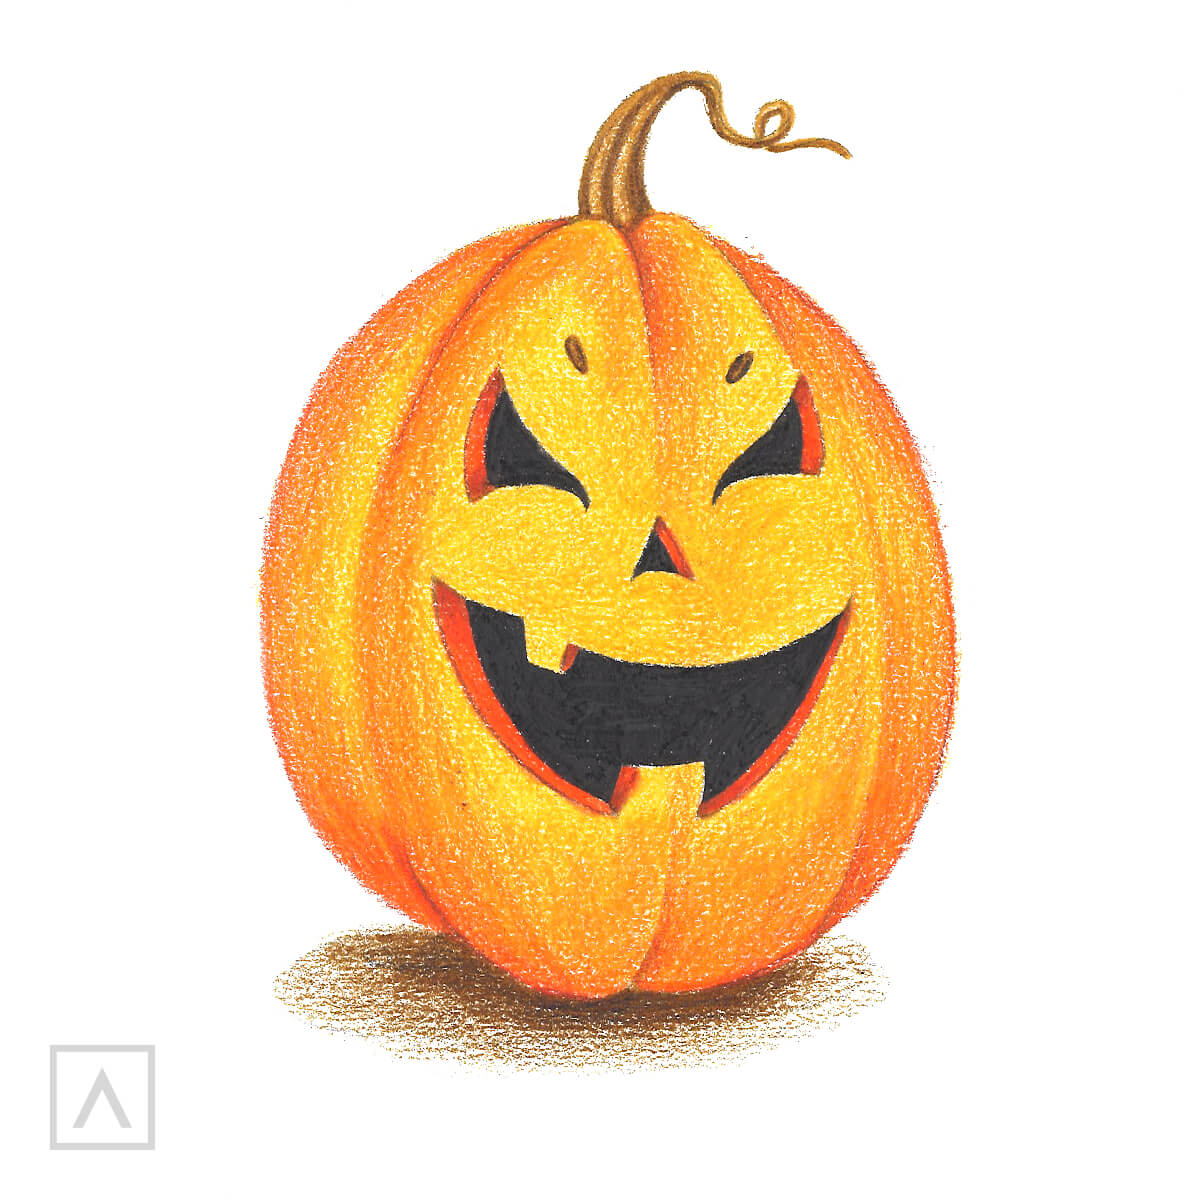 Step By Step Guide On How To Draw A Pumpkin Arteza